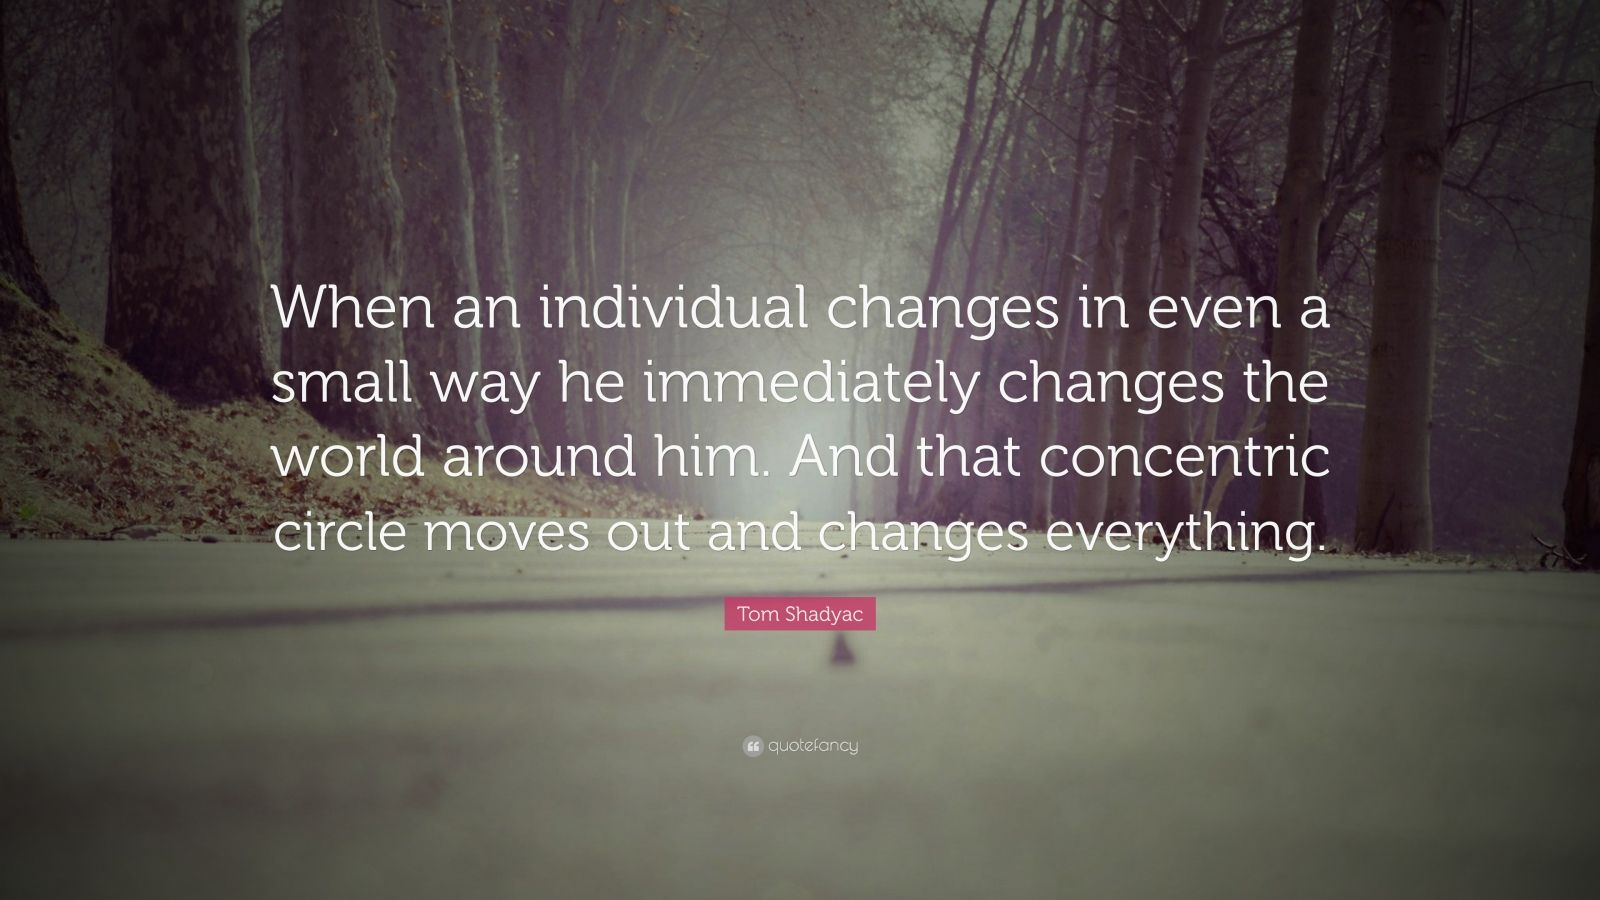 """Tom Shadyac Quote: """"When an individual changes in even a small way he immediately changes the world around him. And that concentric circle moves out and changes everything."""""""